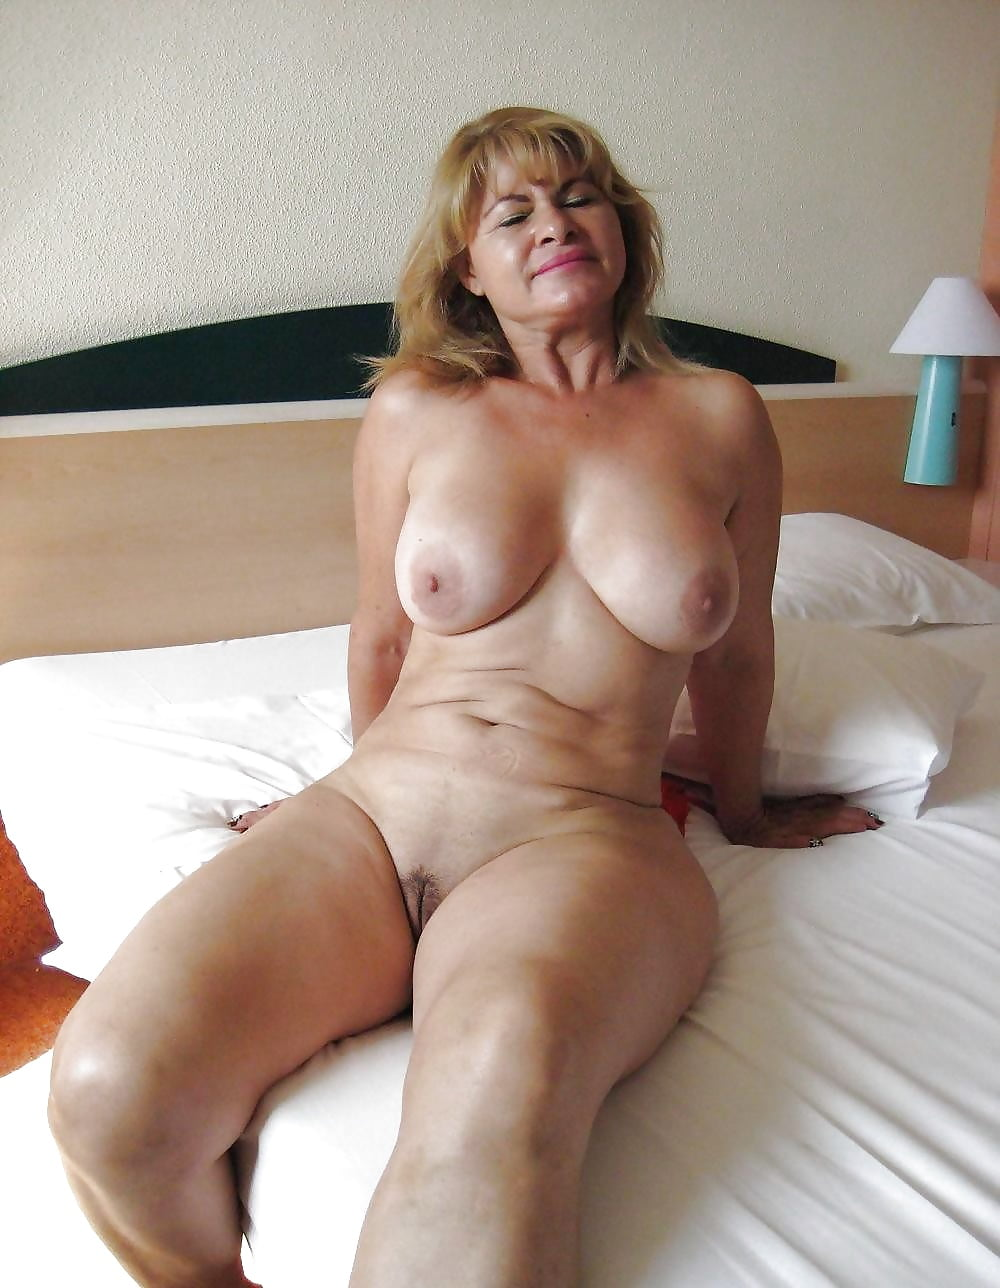 Sexy mature woman gallery, left eye nude